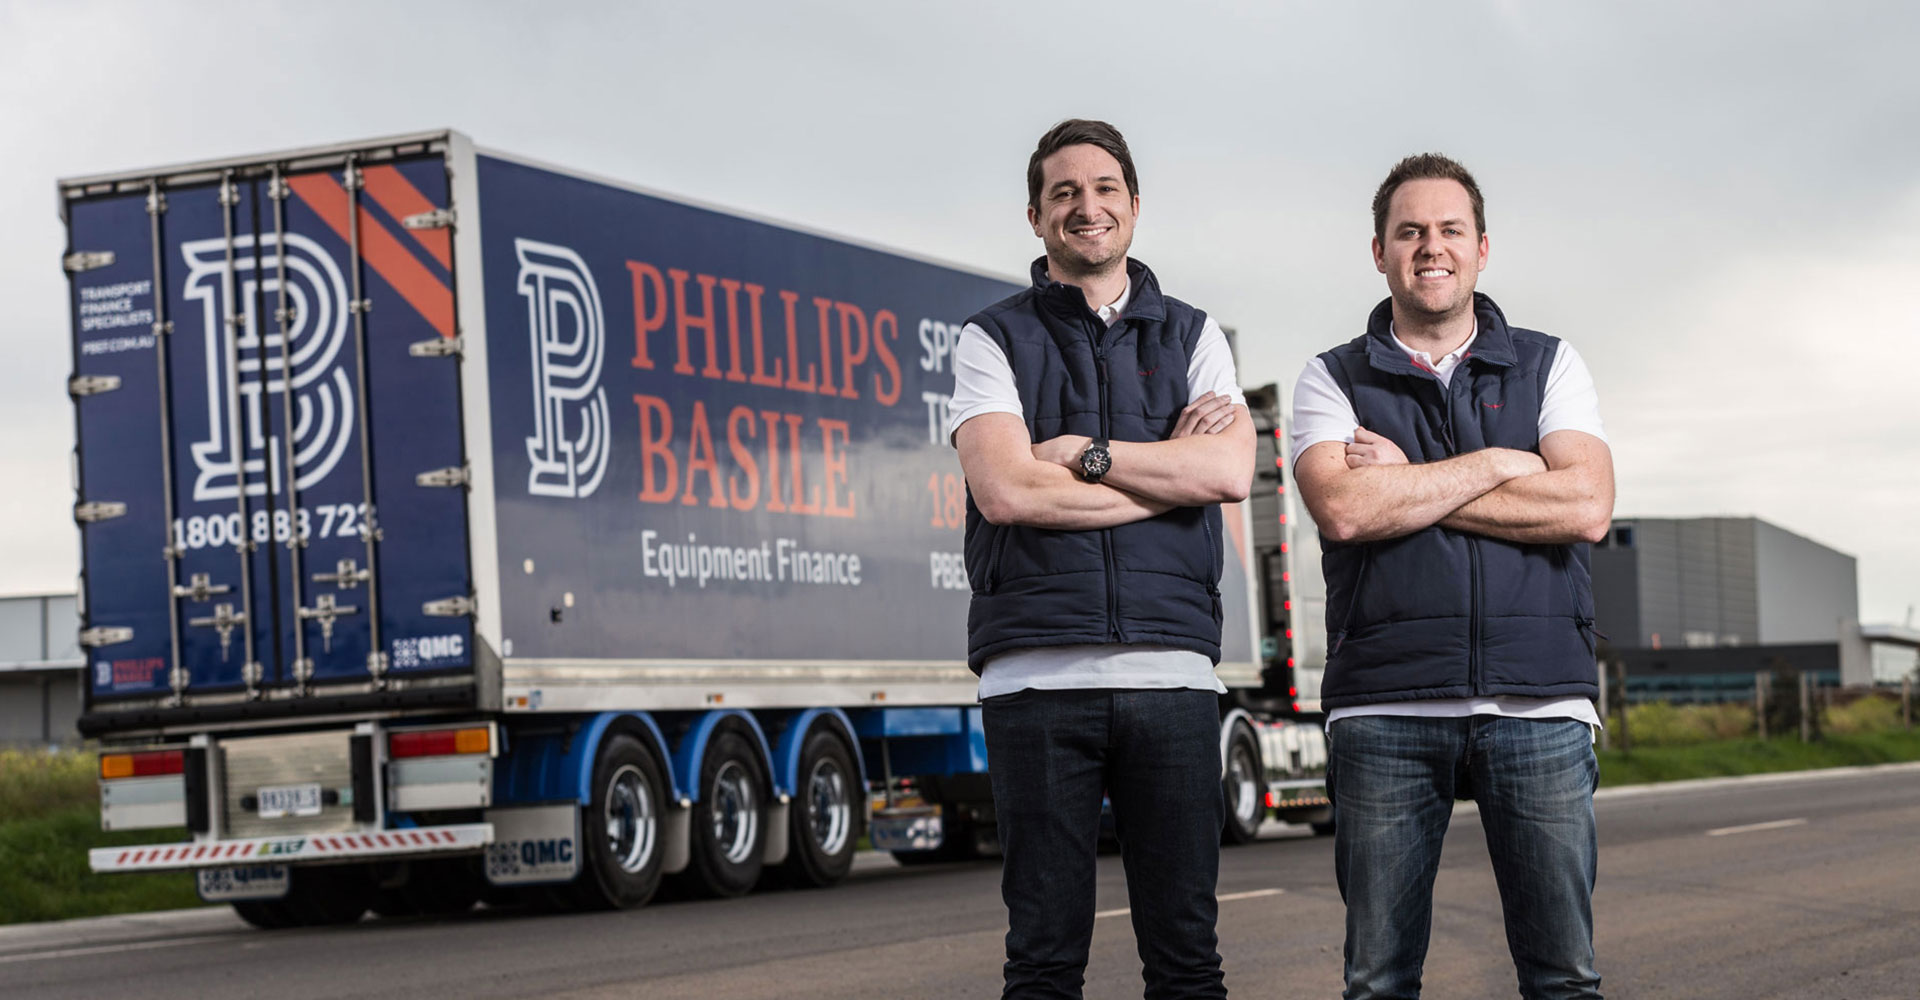 Phillips Basile Team